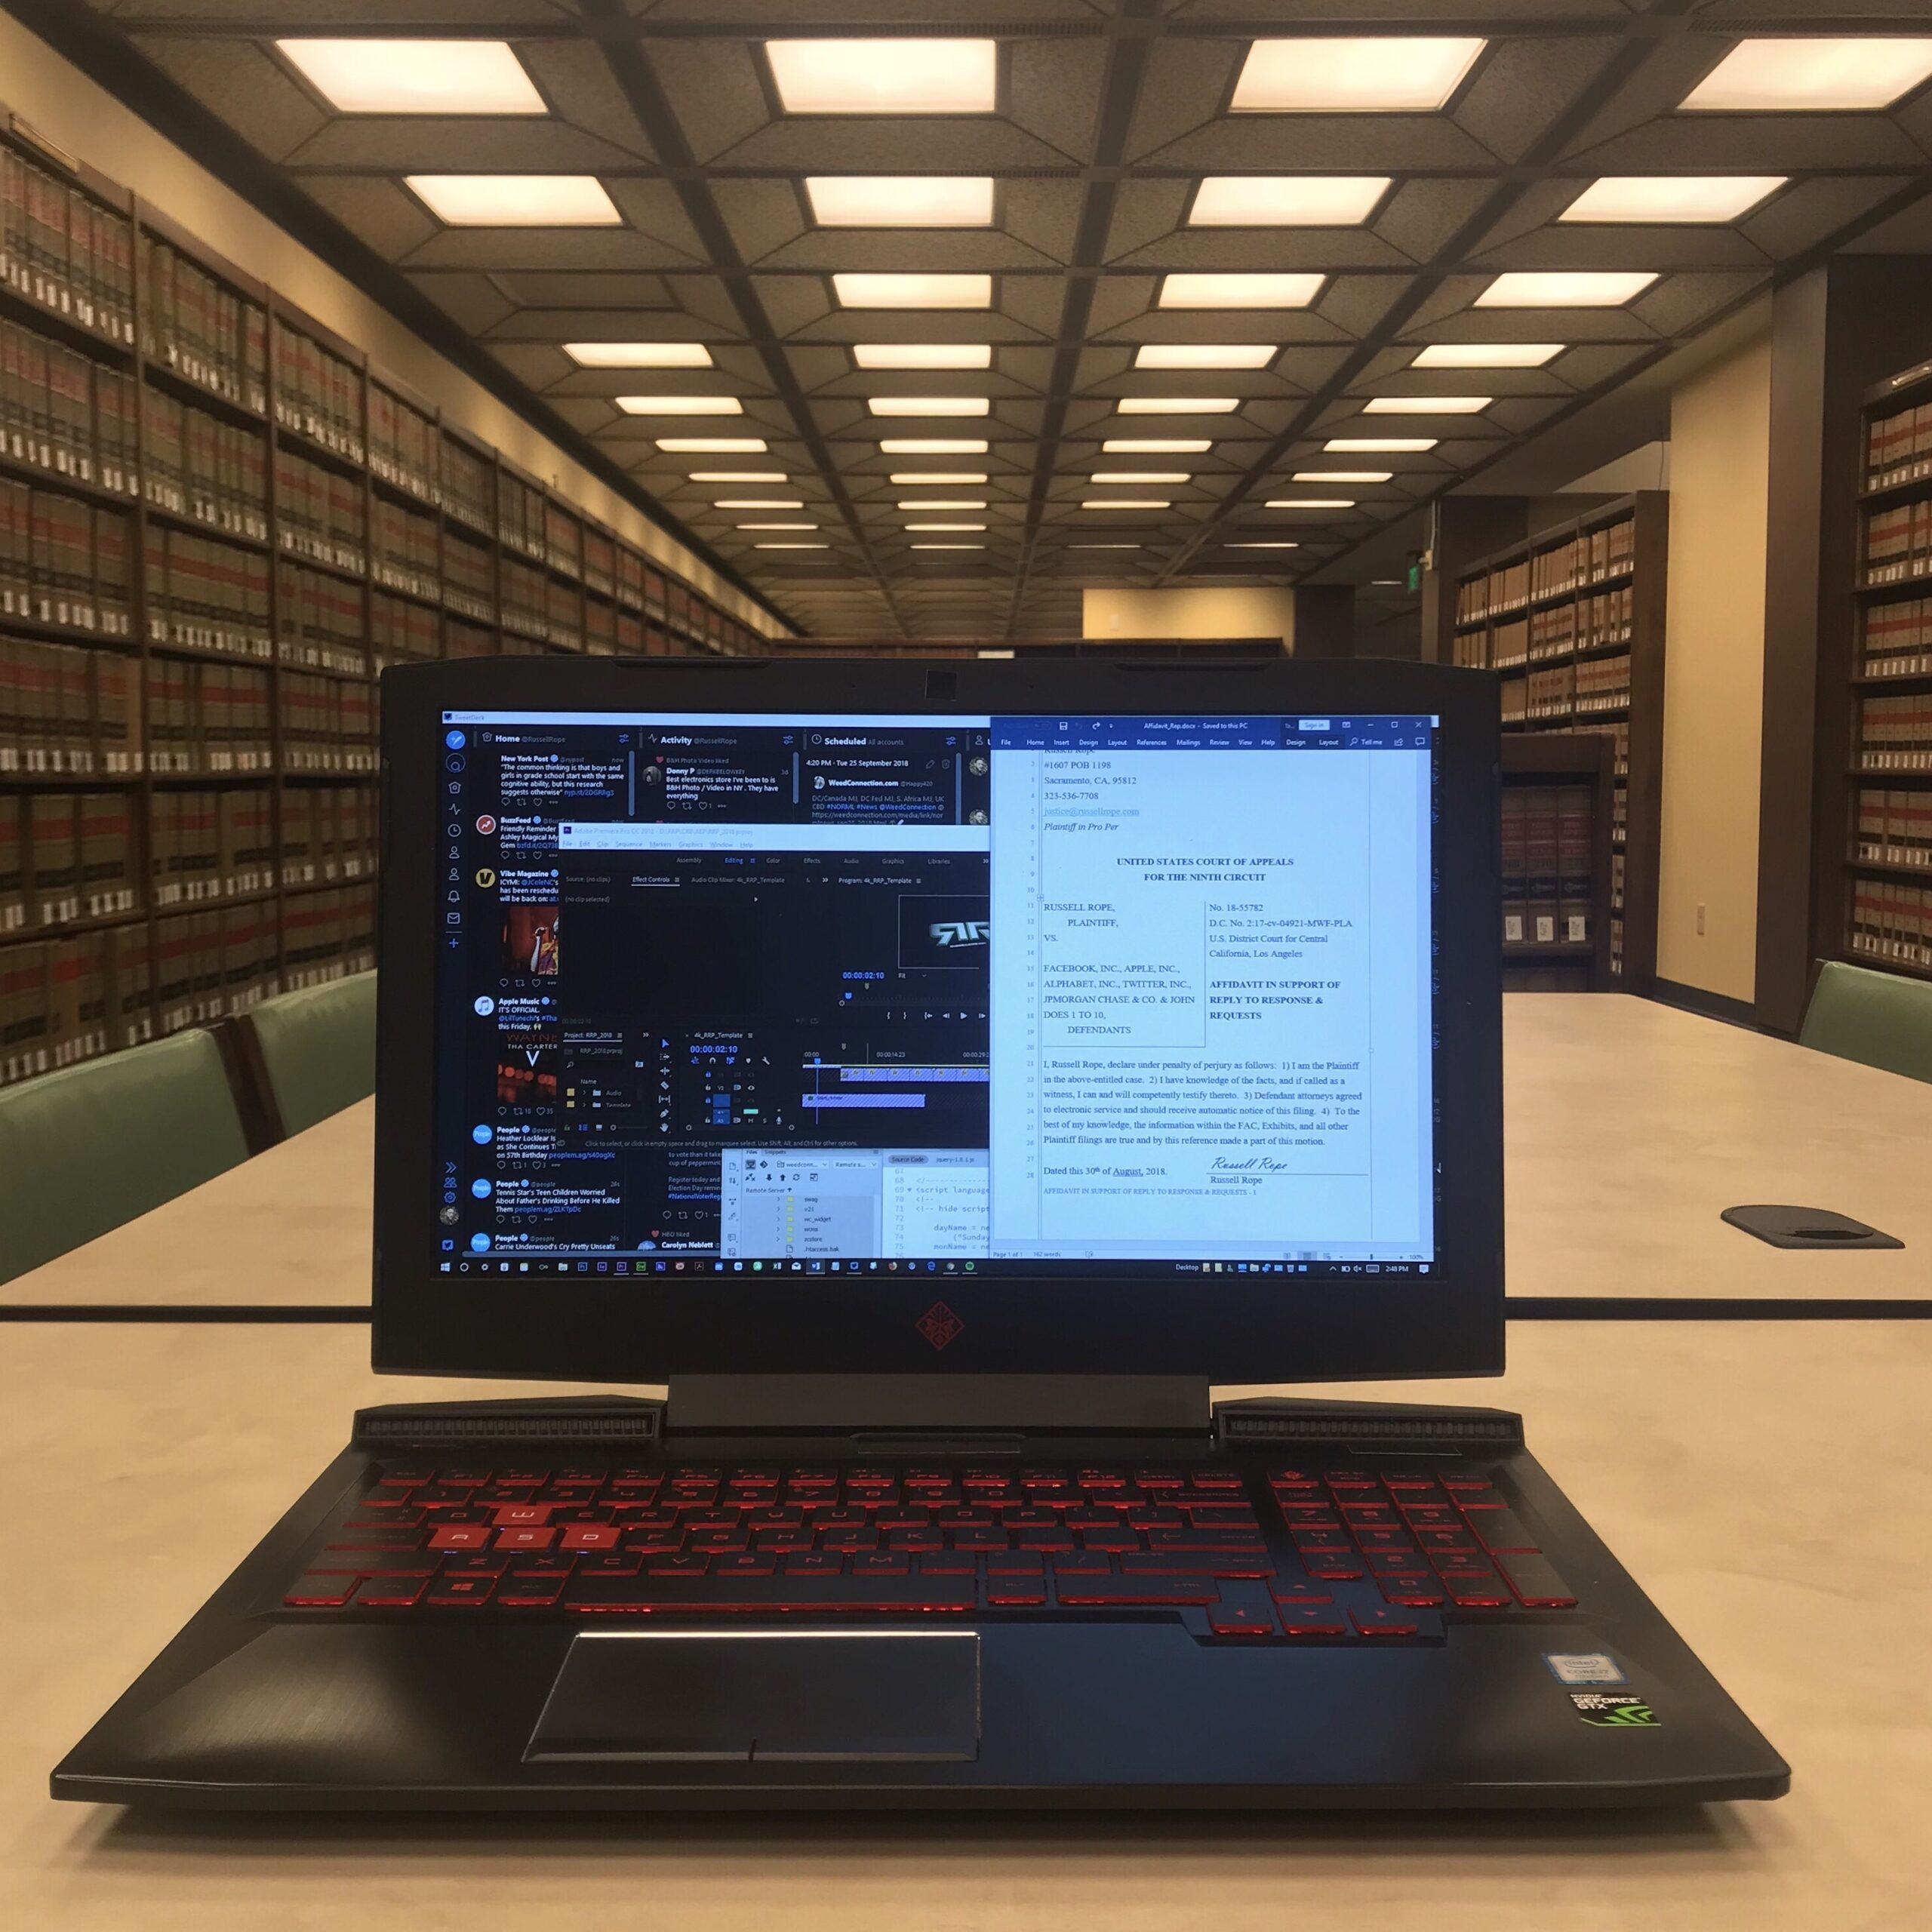 #DTLA #LawLibrary @RussellRope